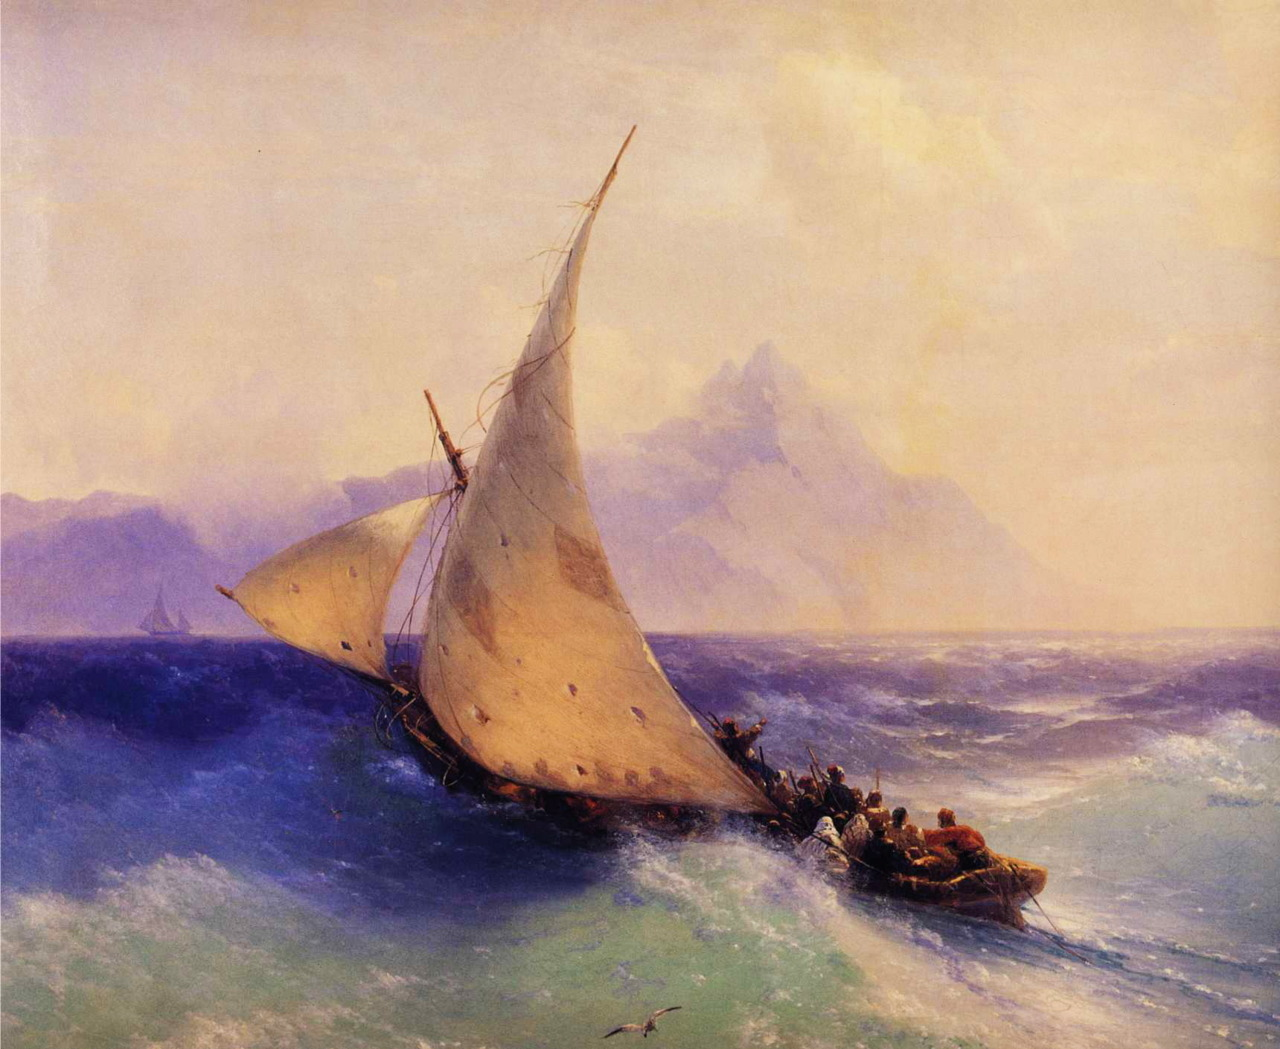 Ivan Aivazovsky, Rescue at Sea, 1872